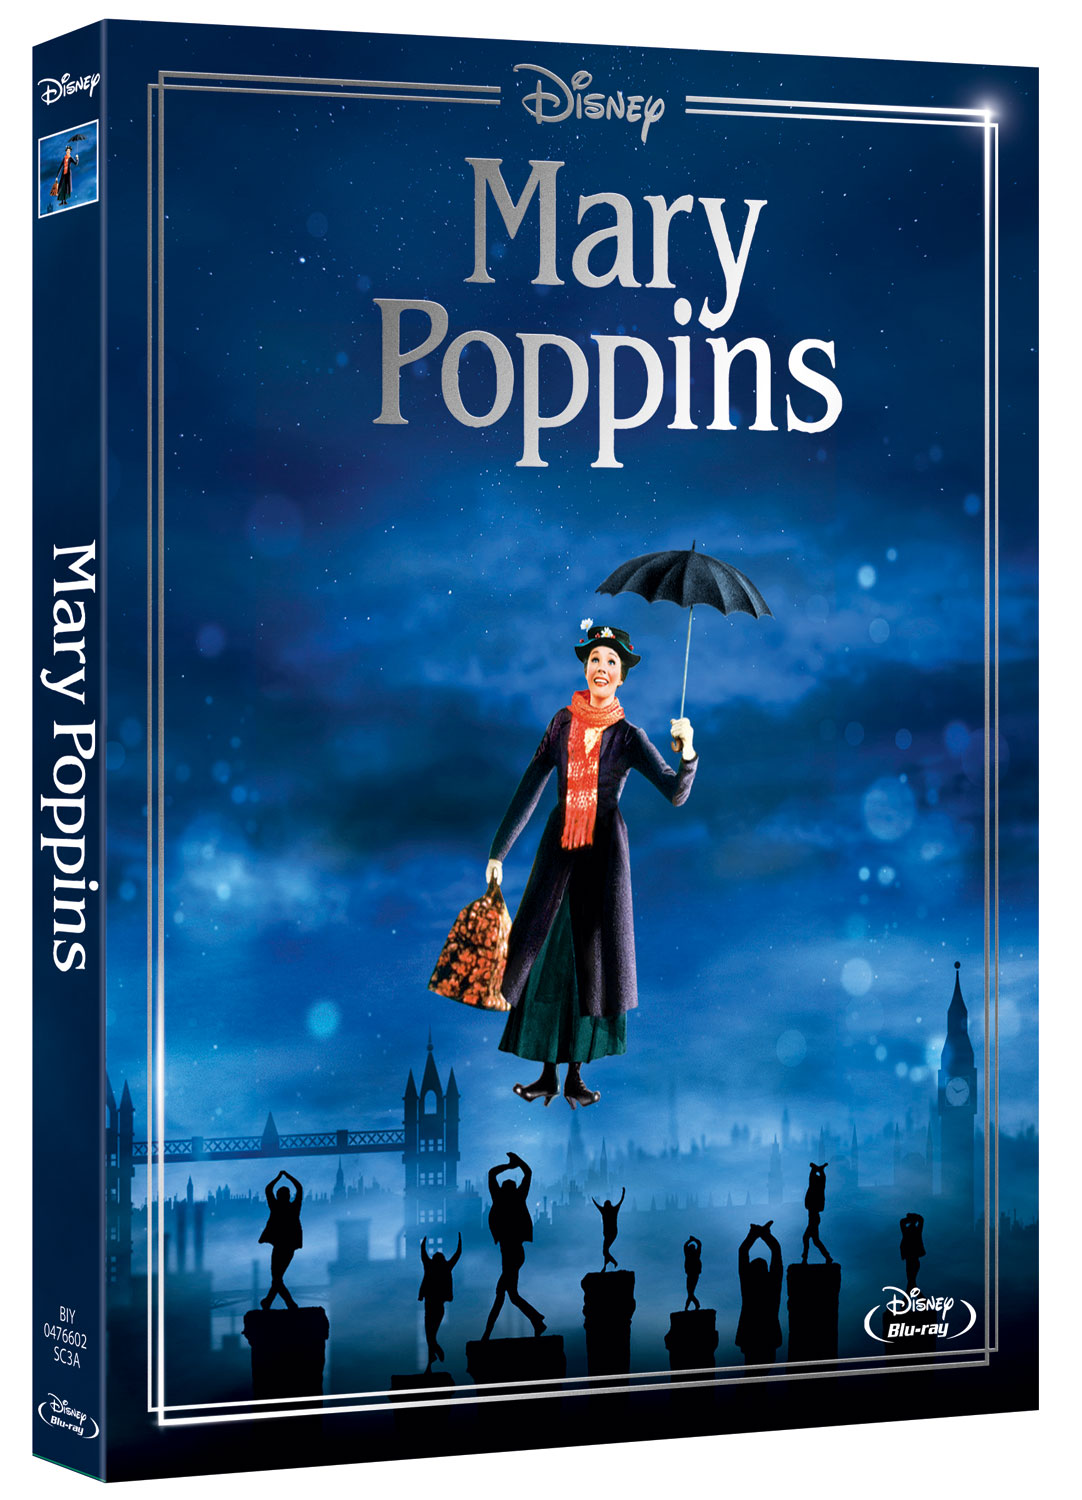 MARY POPPINS (NEW EDITION) - BLU RAY